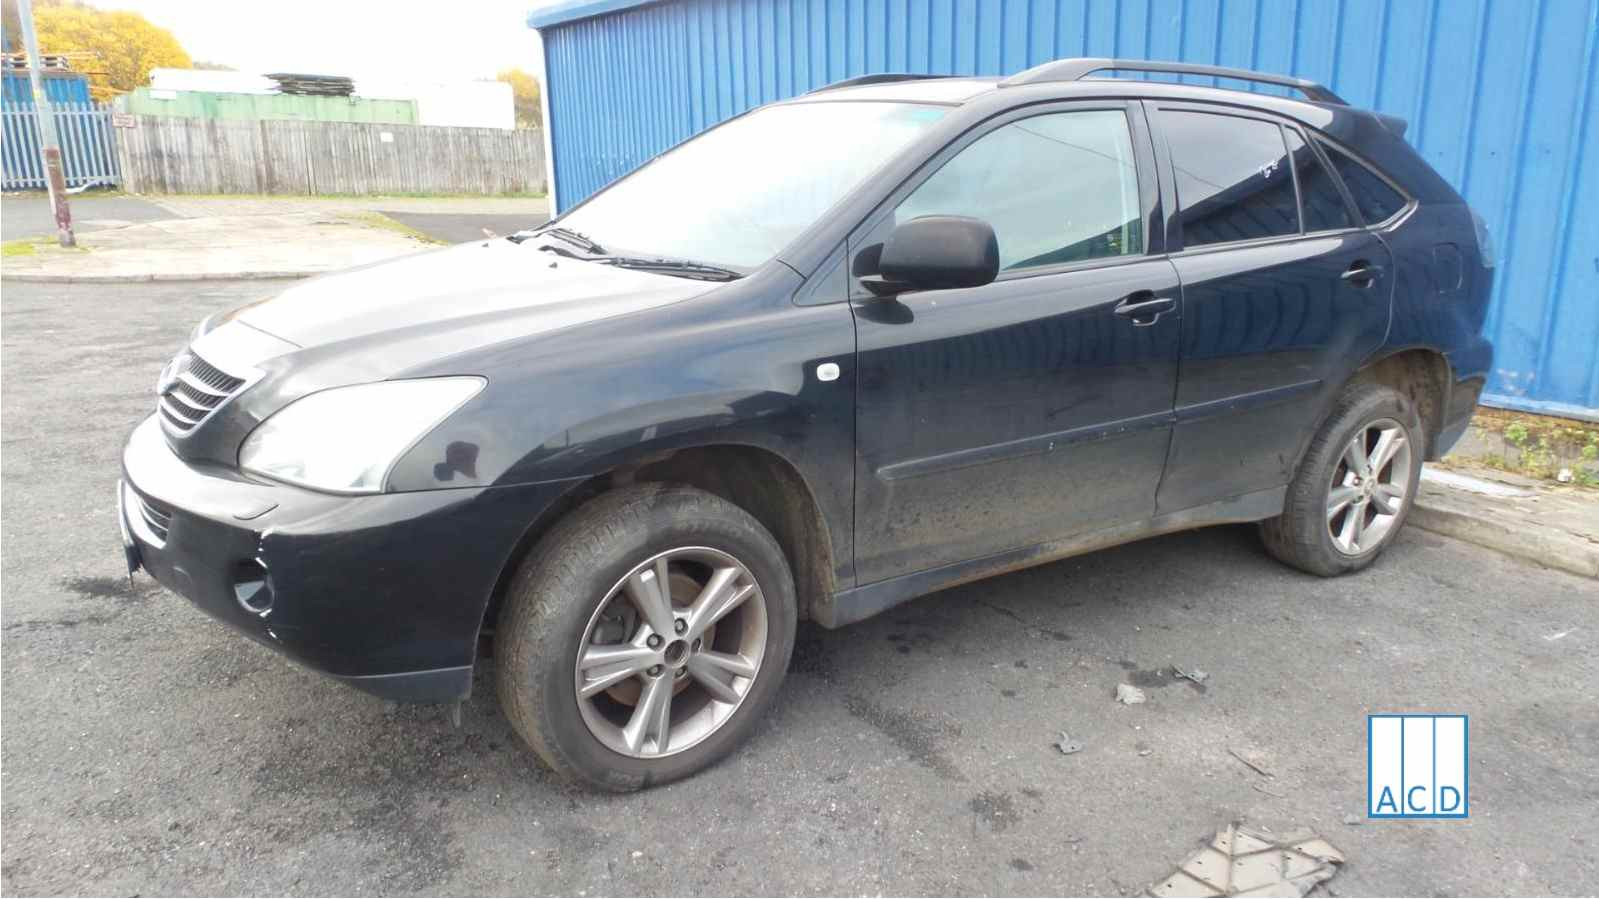 Lexus RX400 SE 3.3L Petrol-Electric Automatic 2006 #2674